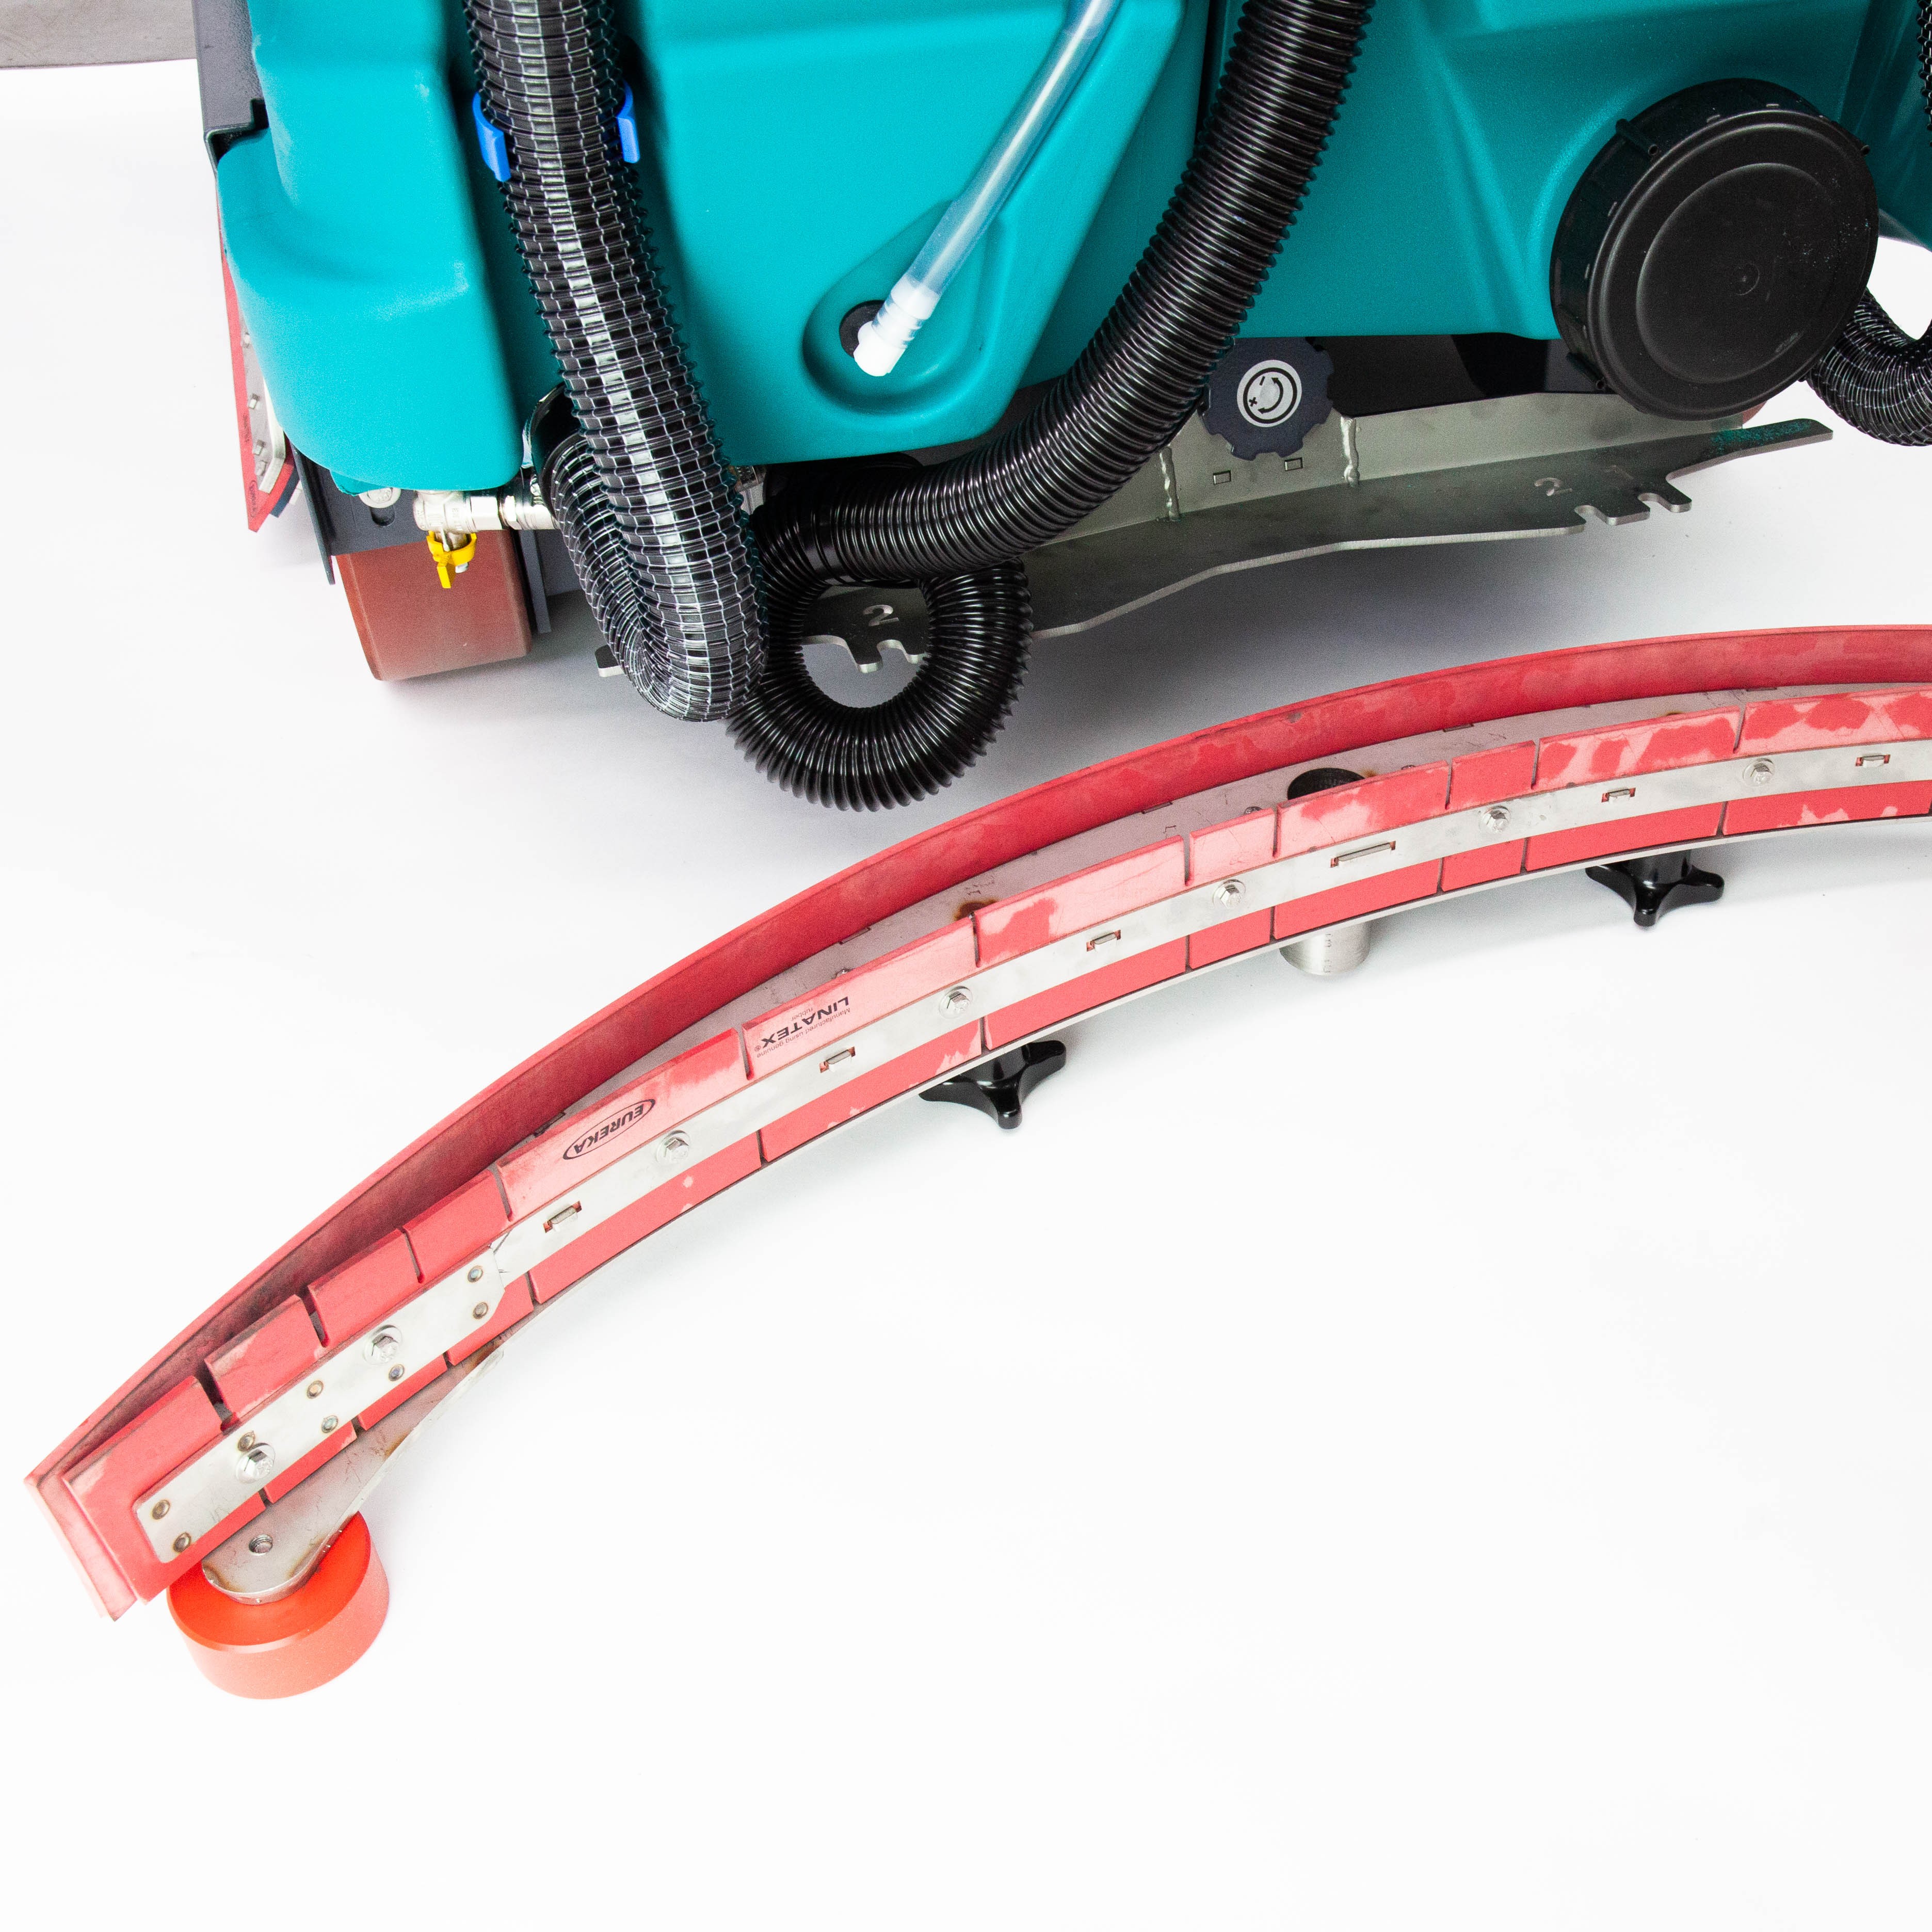 Squeegee blades can be replaced quickly  | Eureka E110-R